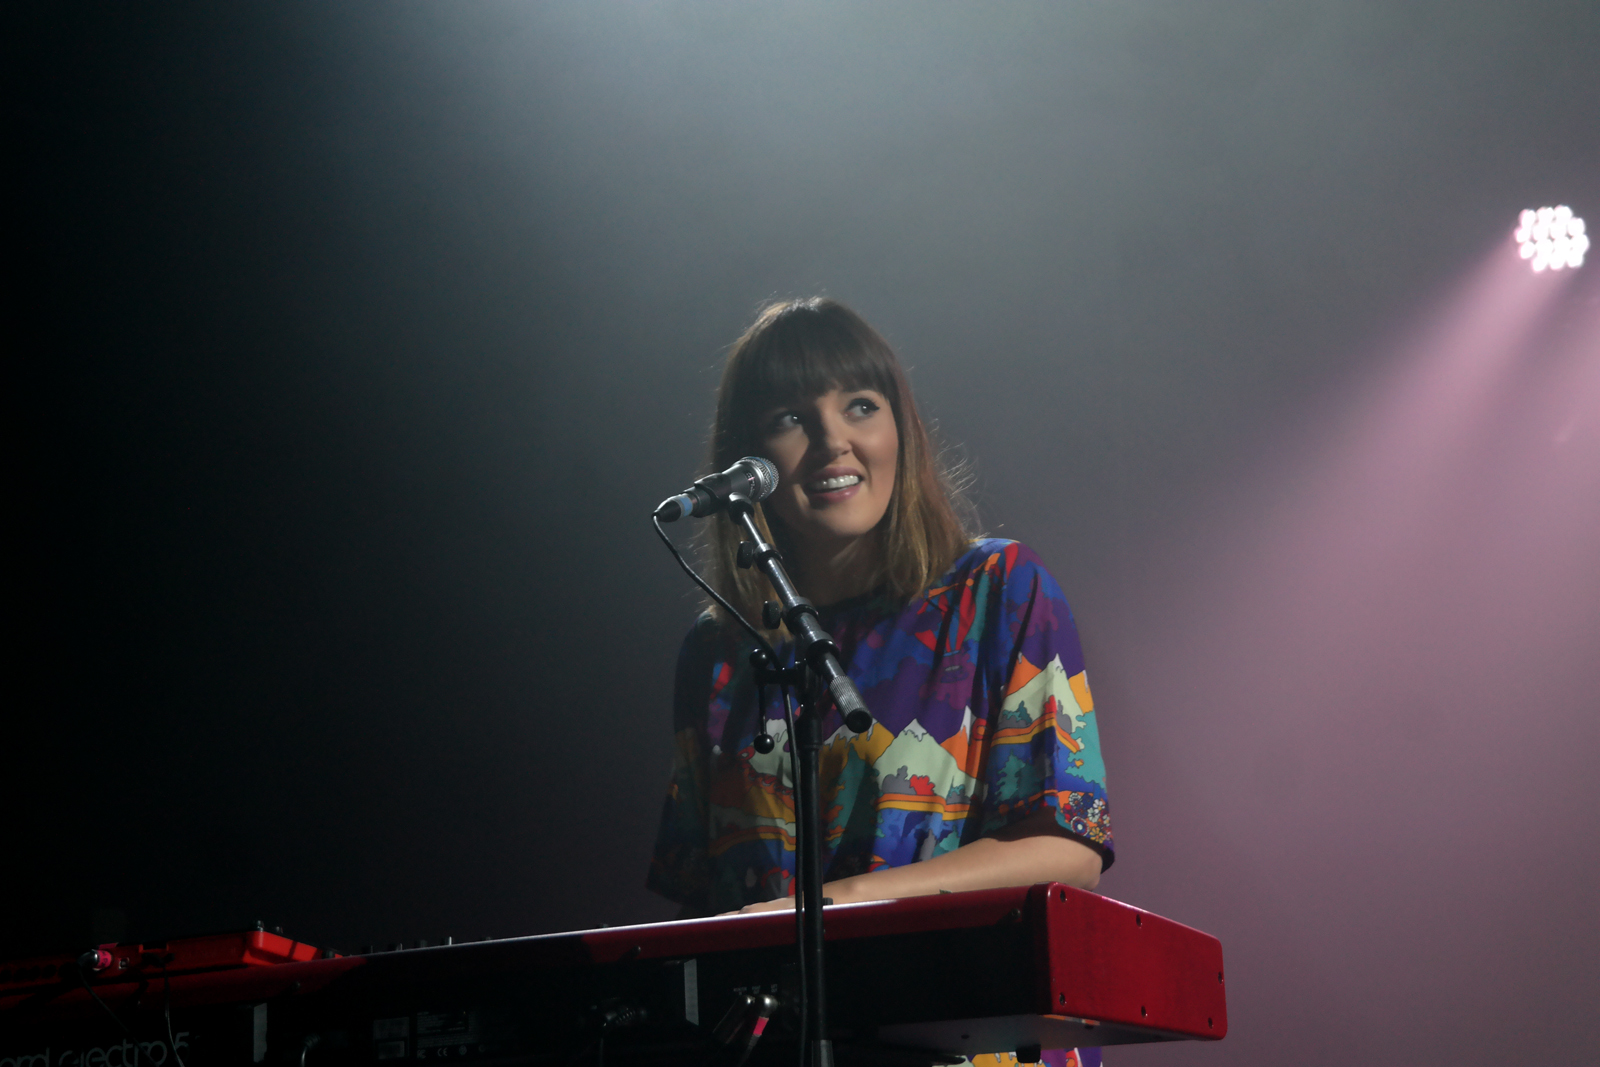 Oh Wonder music band Josephine Vander Gucht live concert Printemps de Bourges 2016 festival musique stage photo usofparis blog